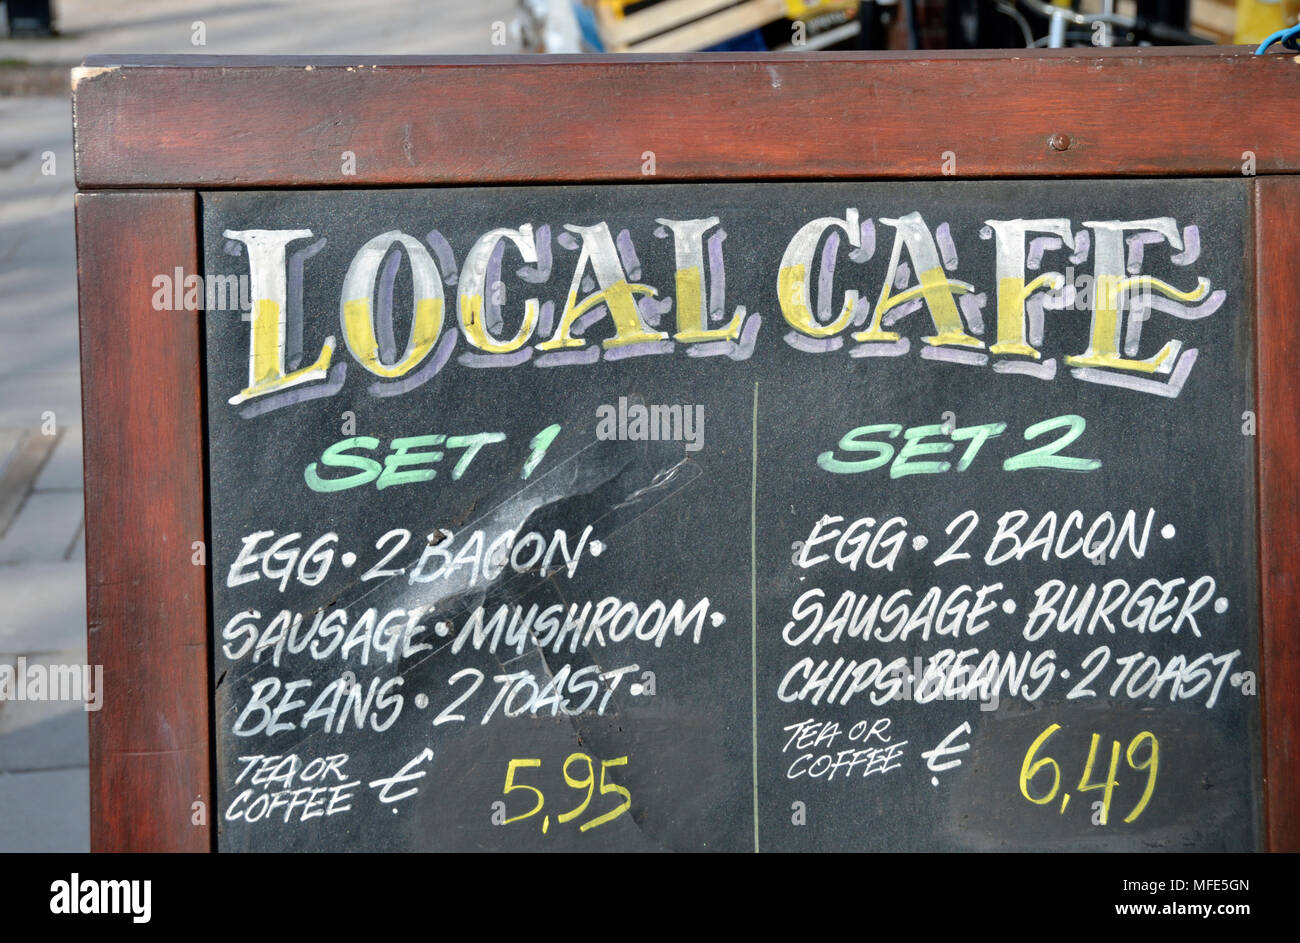 'Local Cafe' board / sign promoting set menus - Stock Image